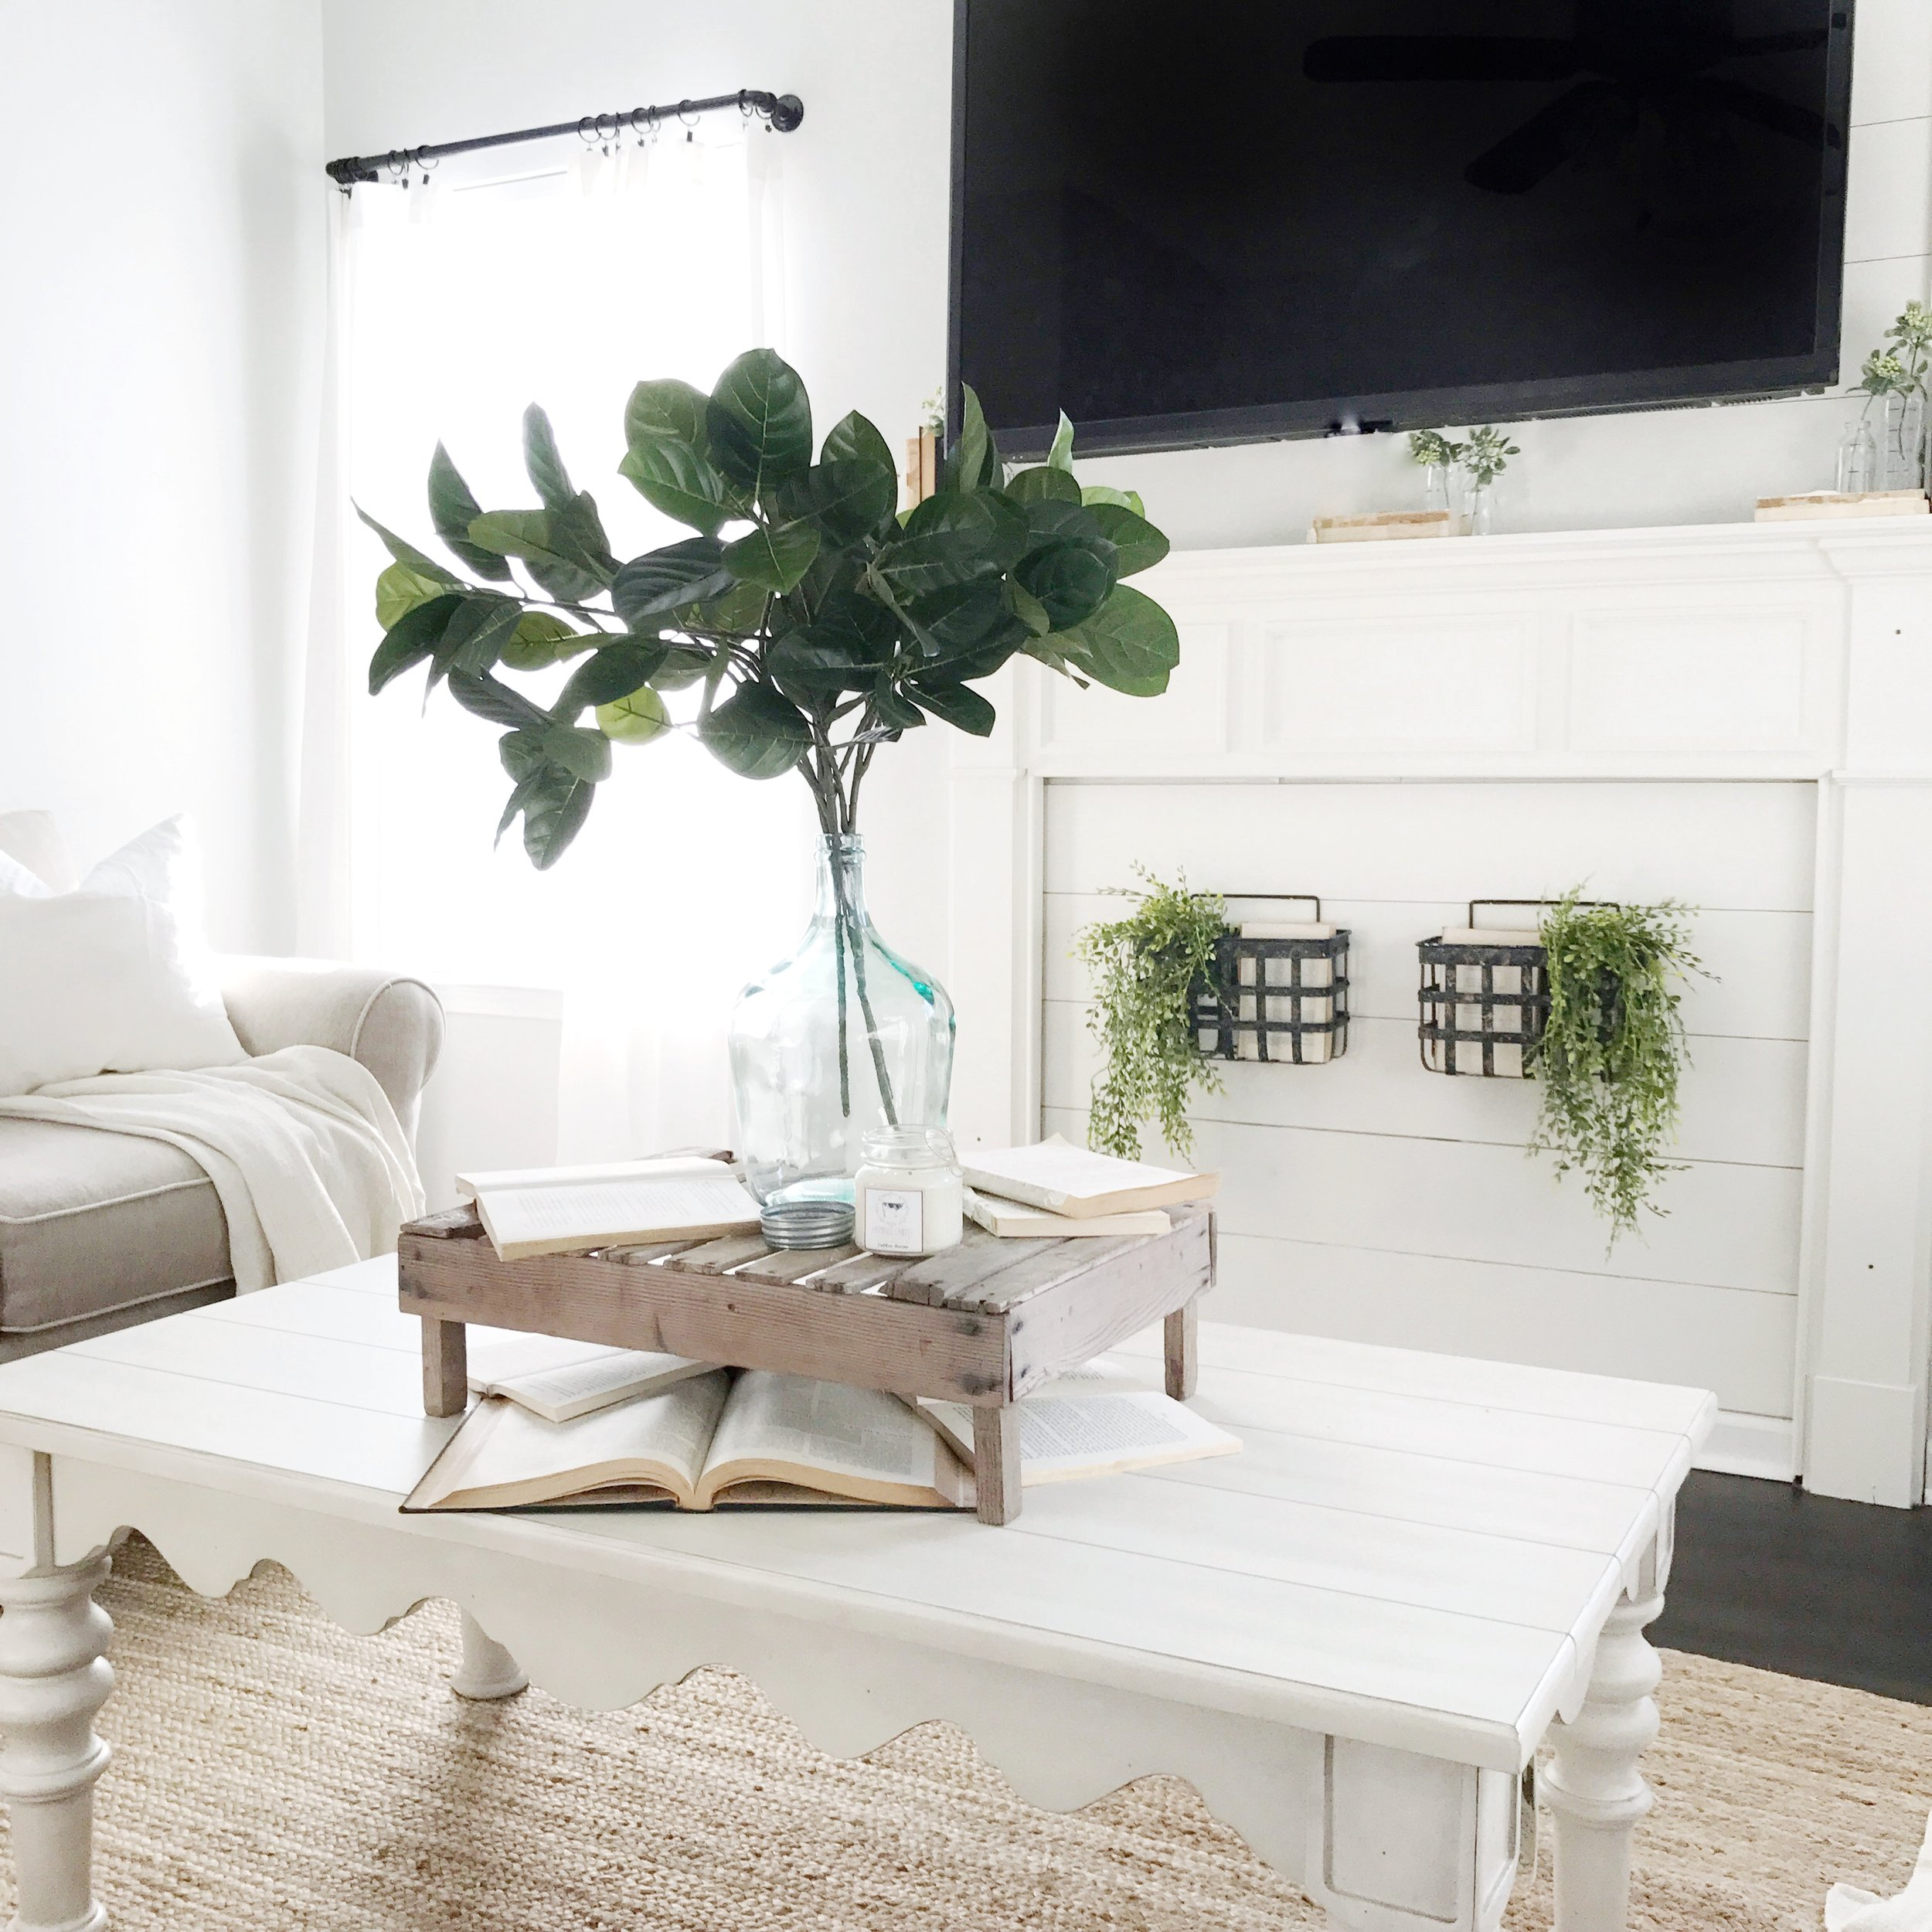 Farmhouse Style Living Room with Magnolia Home Coffee Table- Interior Design Project by Plum Pretty Decor and Design